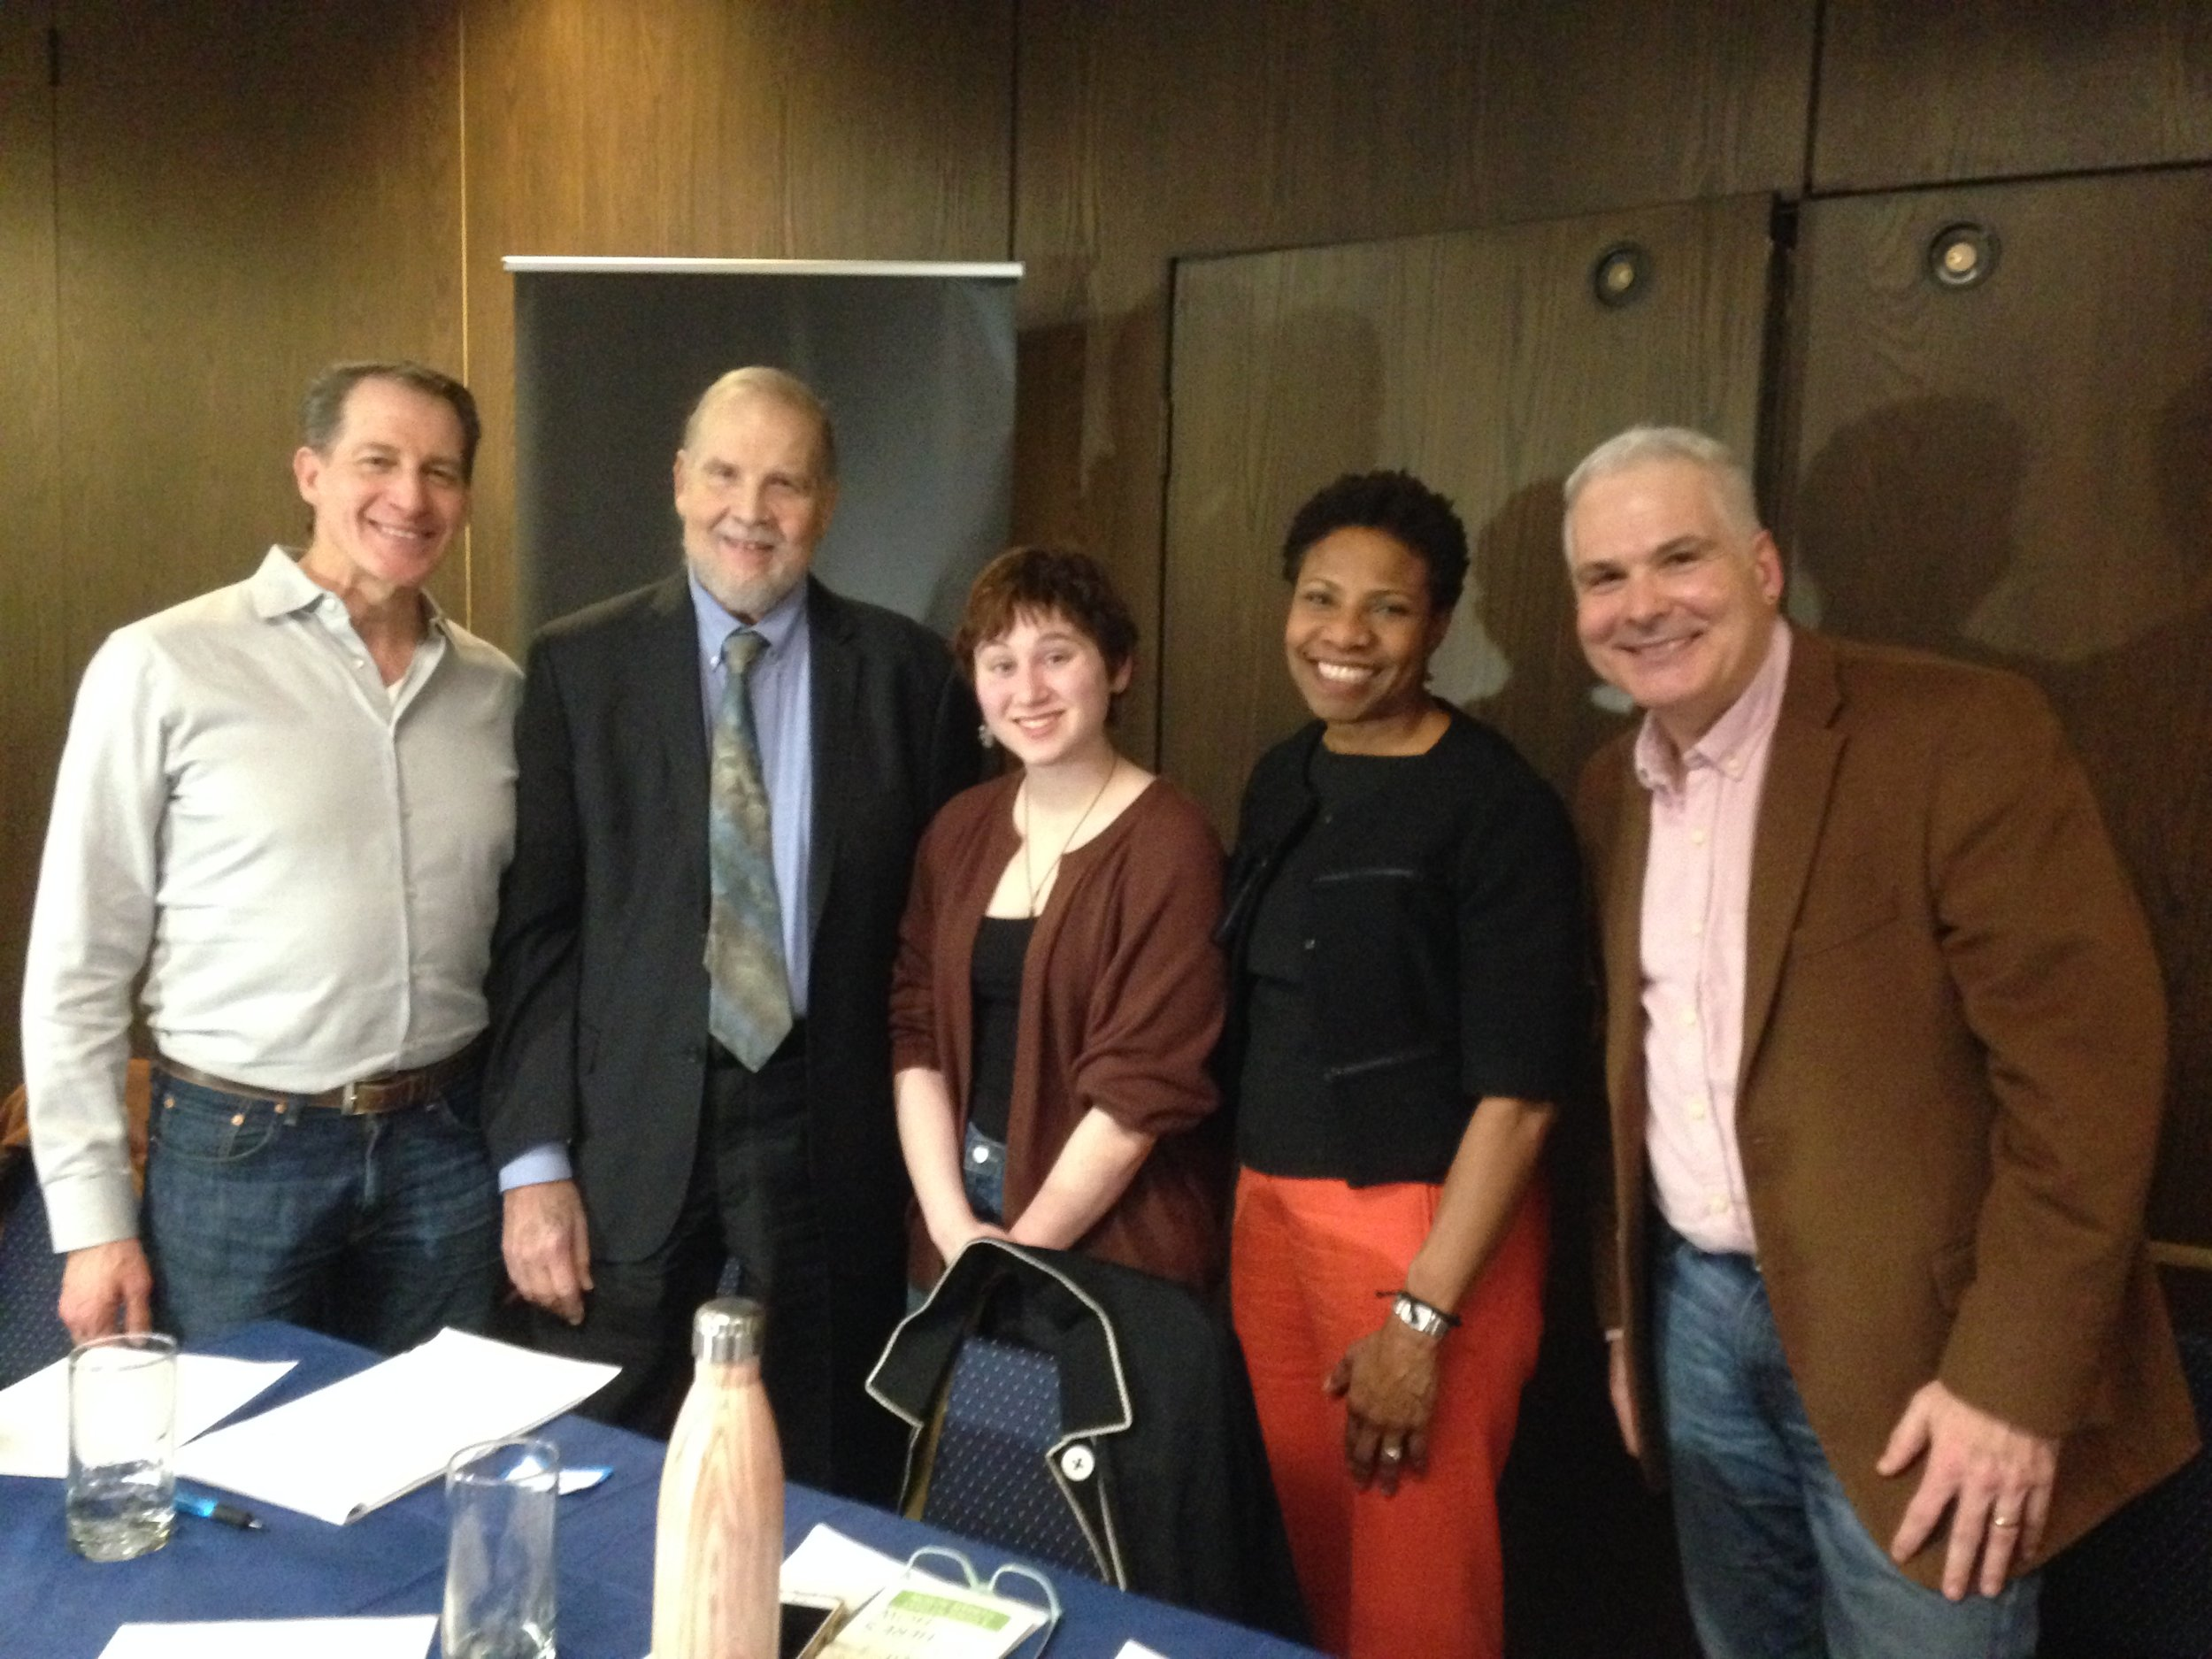 CivicStory forum panelists (l. to r.) Allan Chernoff, Edward Lloyd, Zahava Rojer, Patricia Canning and Michael Taylor